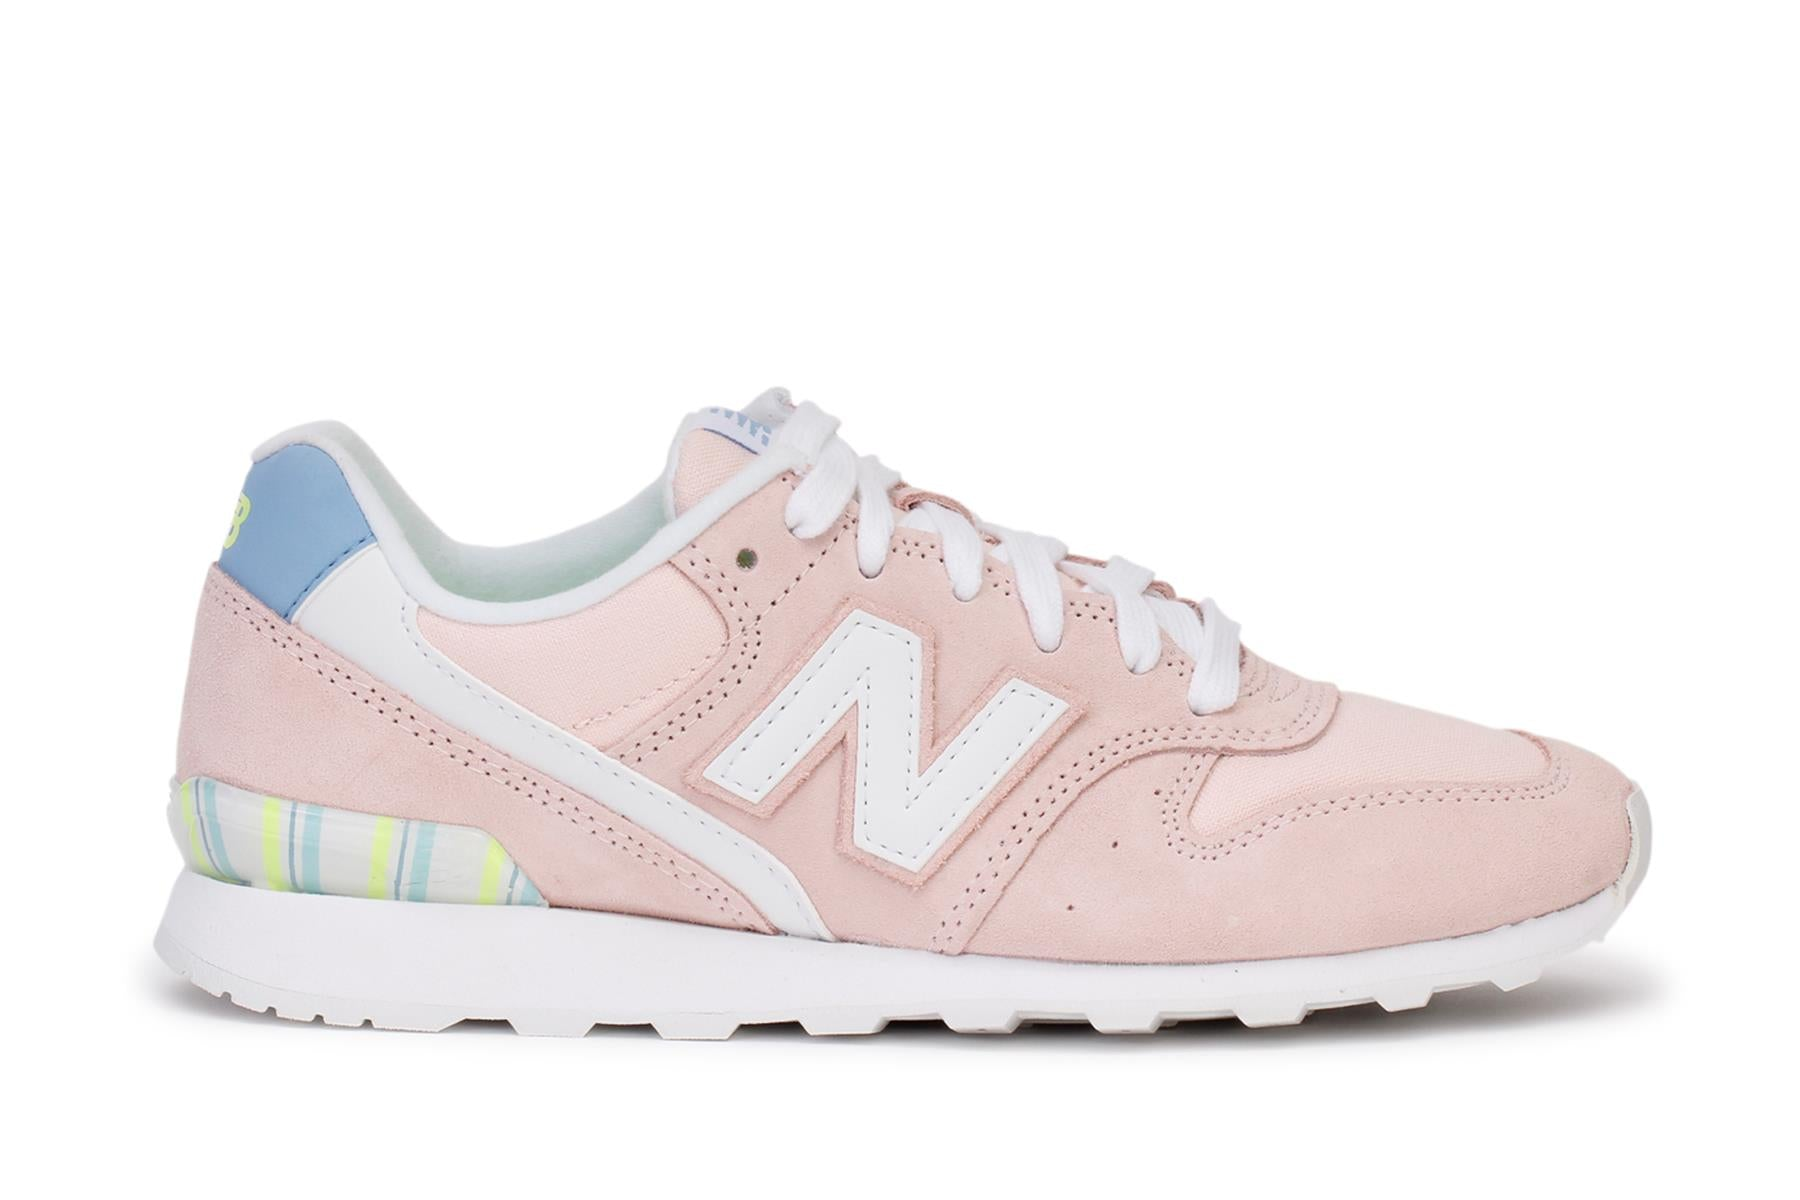 new-balance-womens-classics-696-sneakers-sunrise-glo-white-wl696osb-main